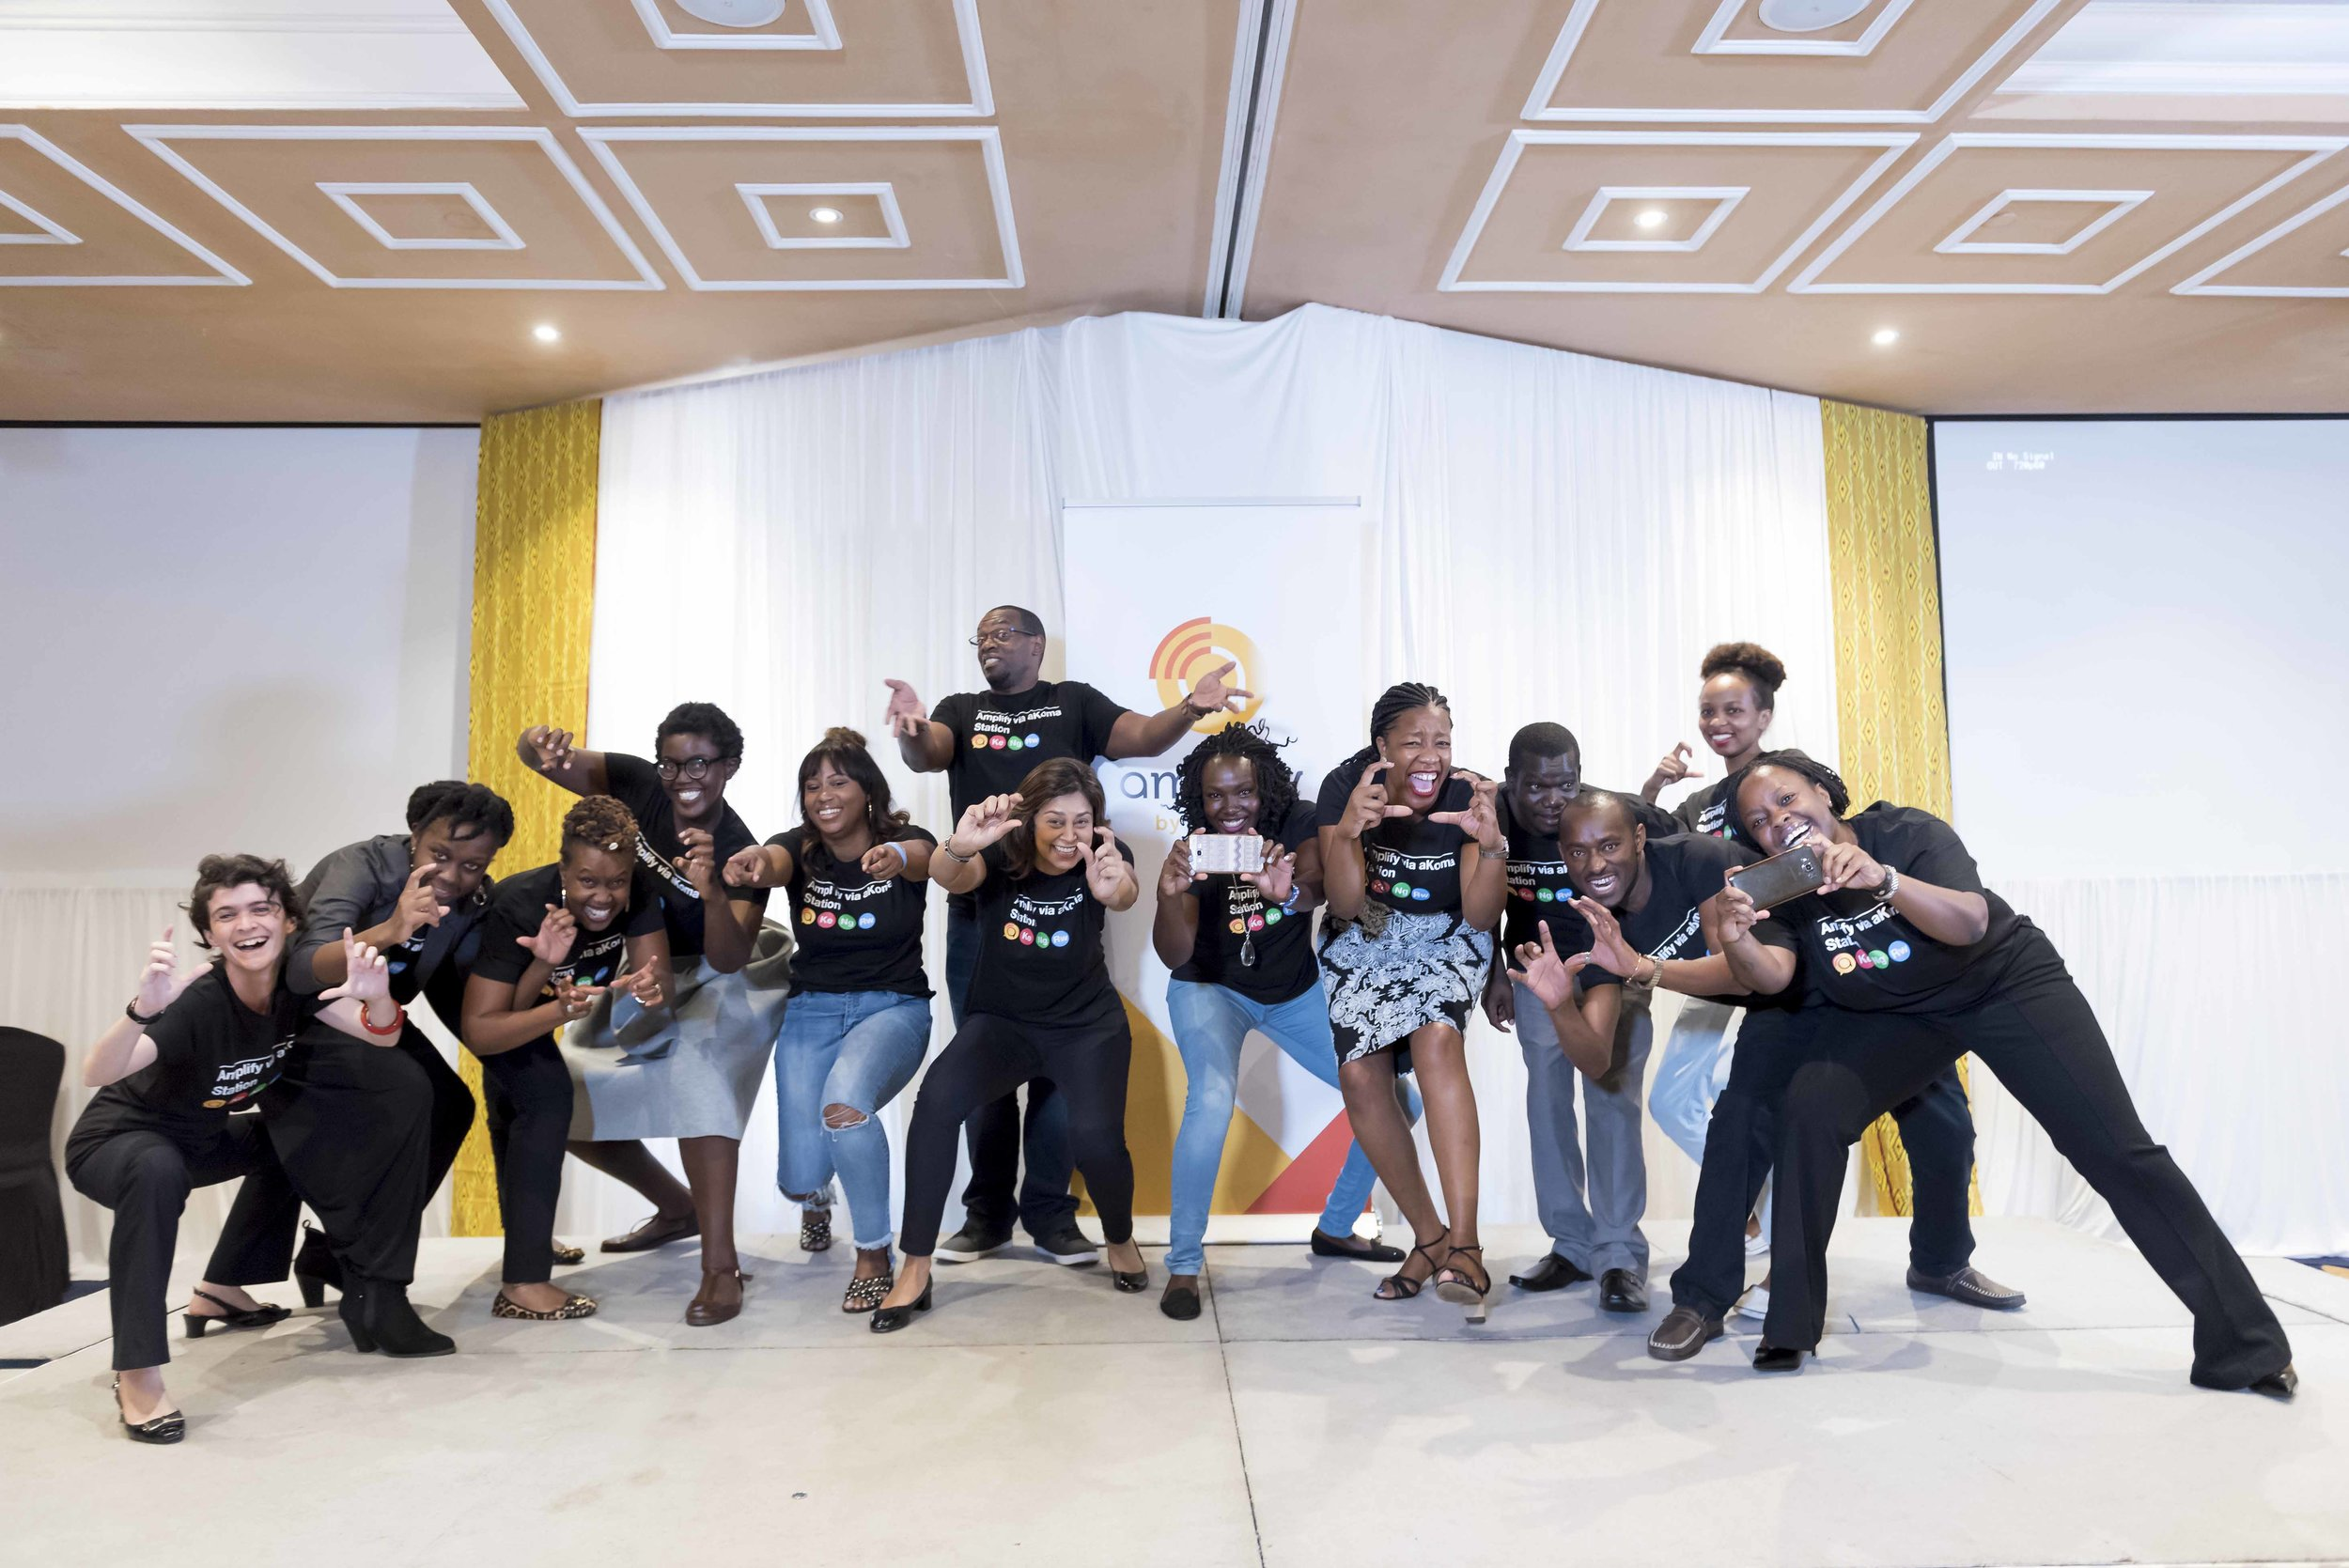 (Ventures Africa) The aKoma 25: Breeding New African Storytellers